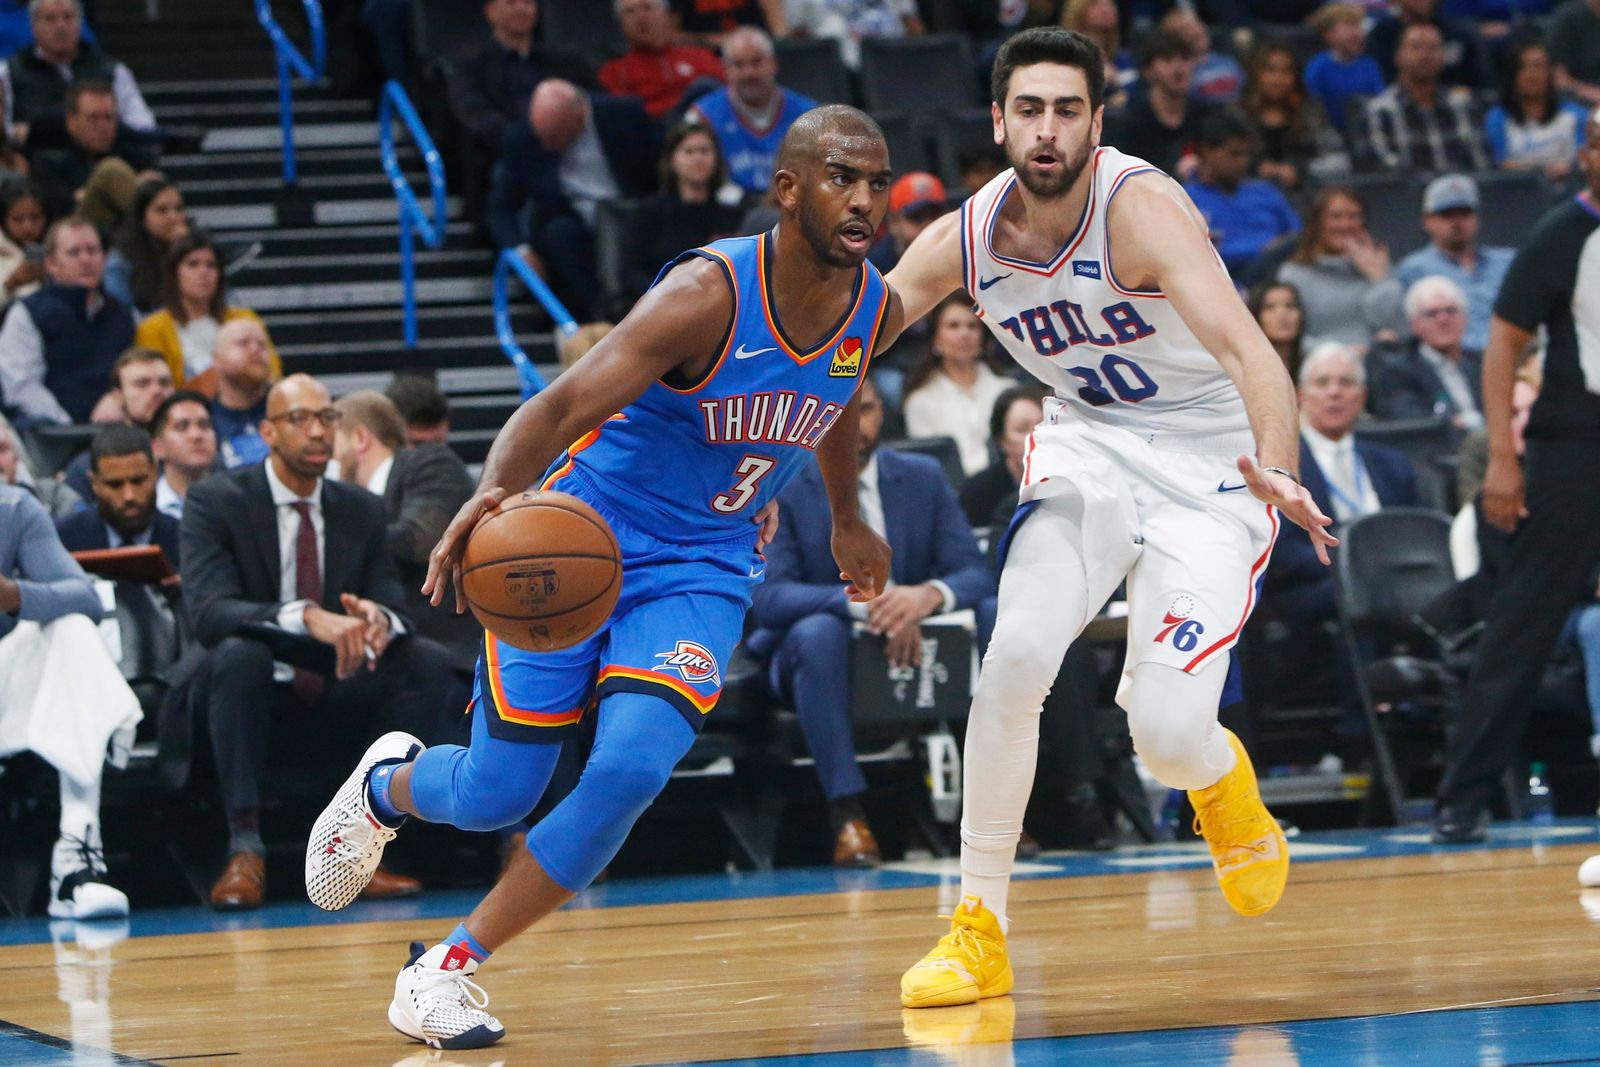 Oklahoma City Thunder guard Chris Paul (3) drives around Philadelphia 76ers guard Furkan Korkmaz (30) during the first half of an NBA basketball game Friday, Nov. 15, 2019, in Oklahoma City. (AP Photo/Sue Ogrocki)